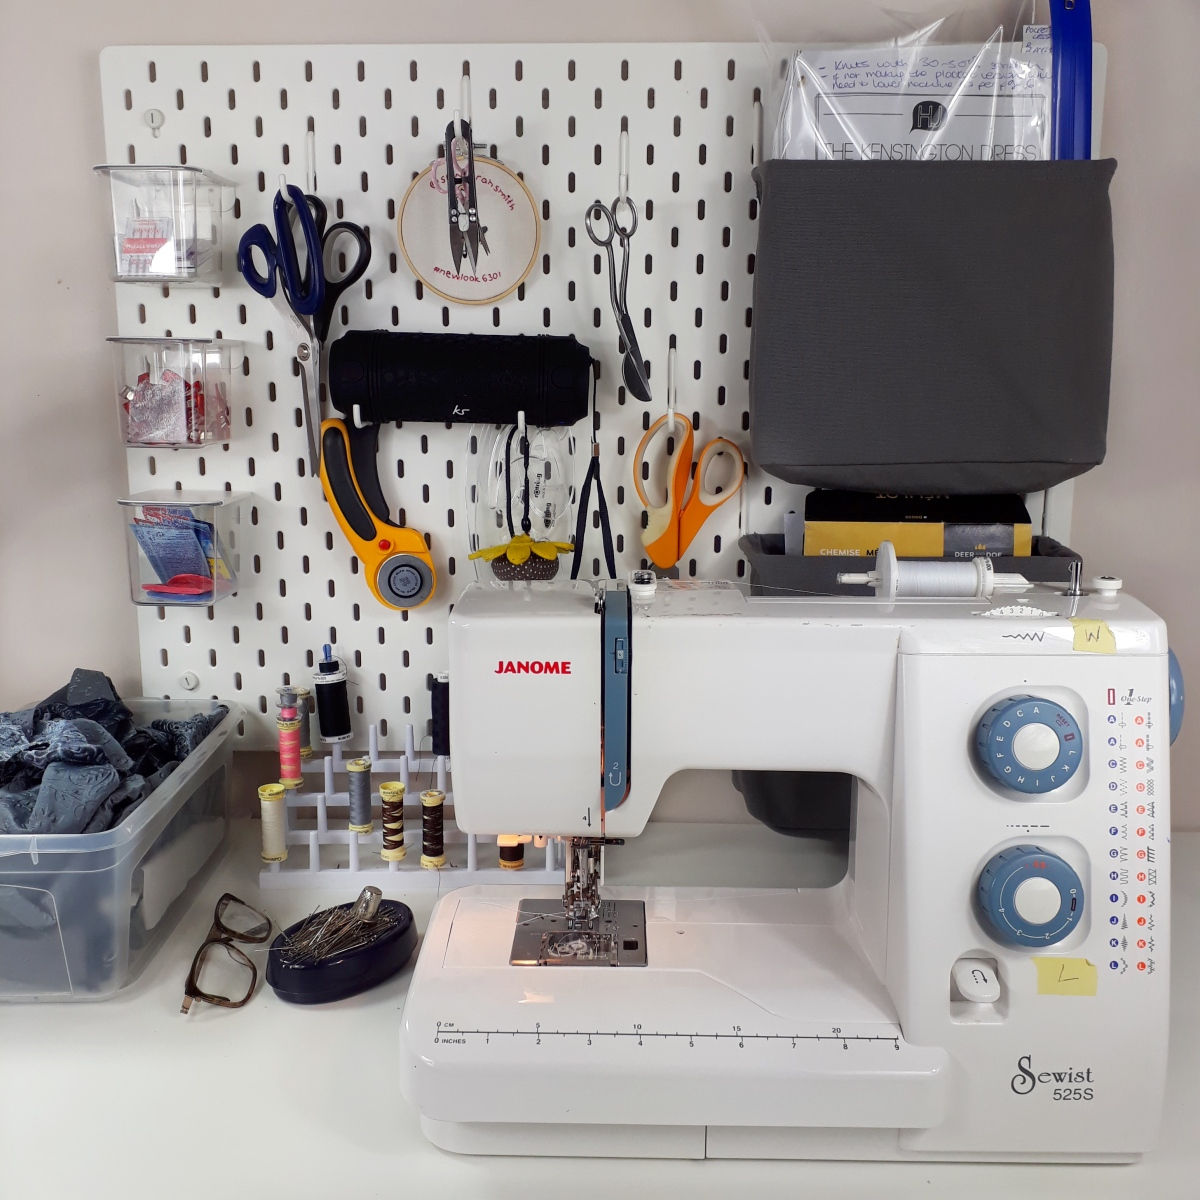 My Sewing Room Set Up + Tips for Sewing in a Small Space!